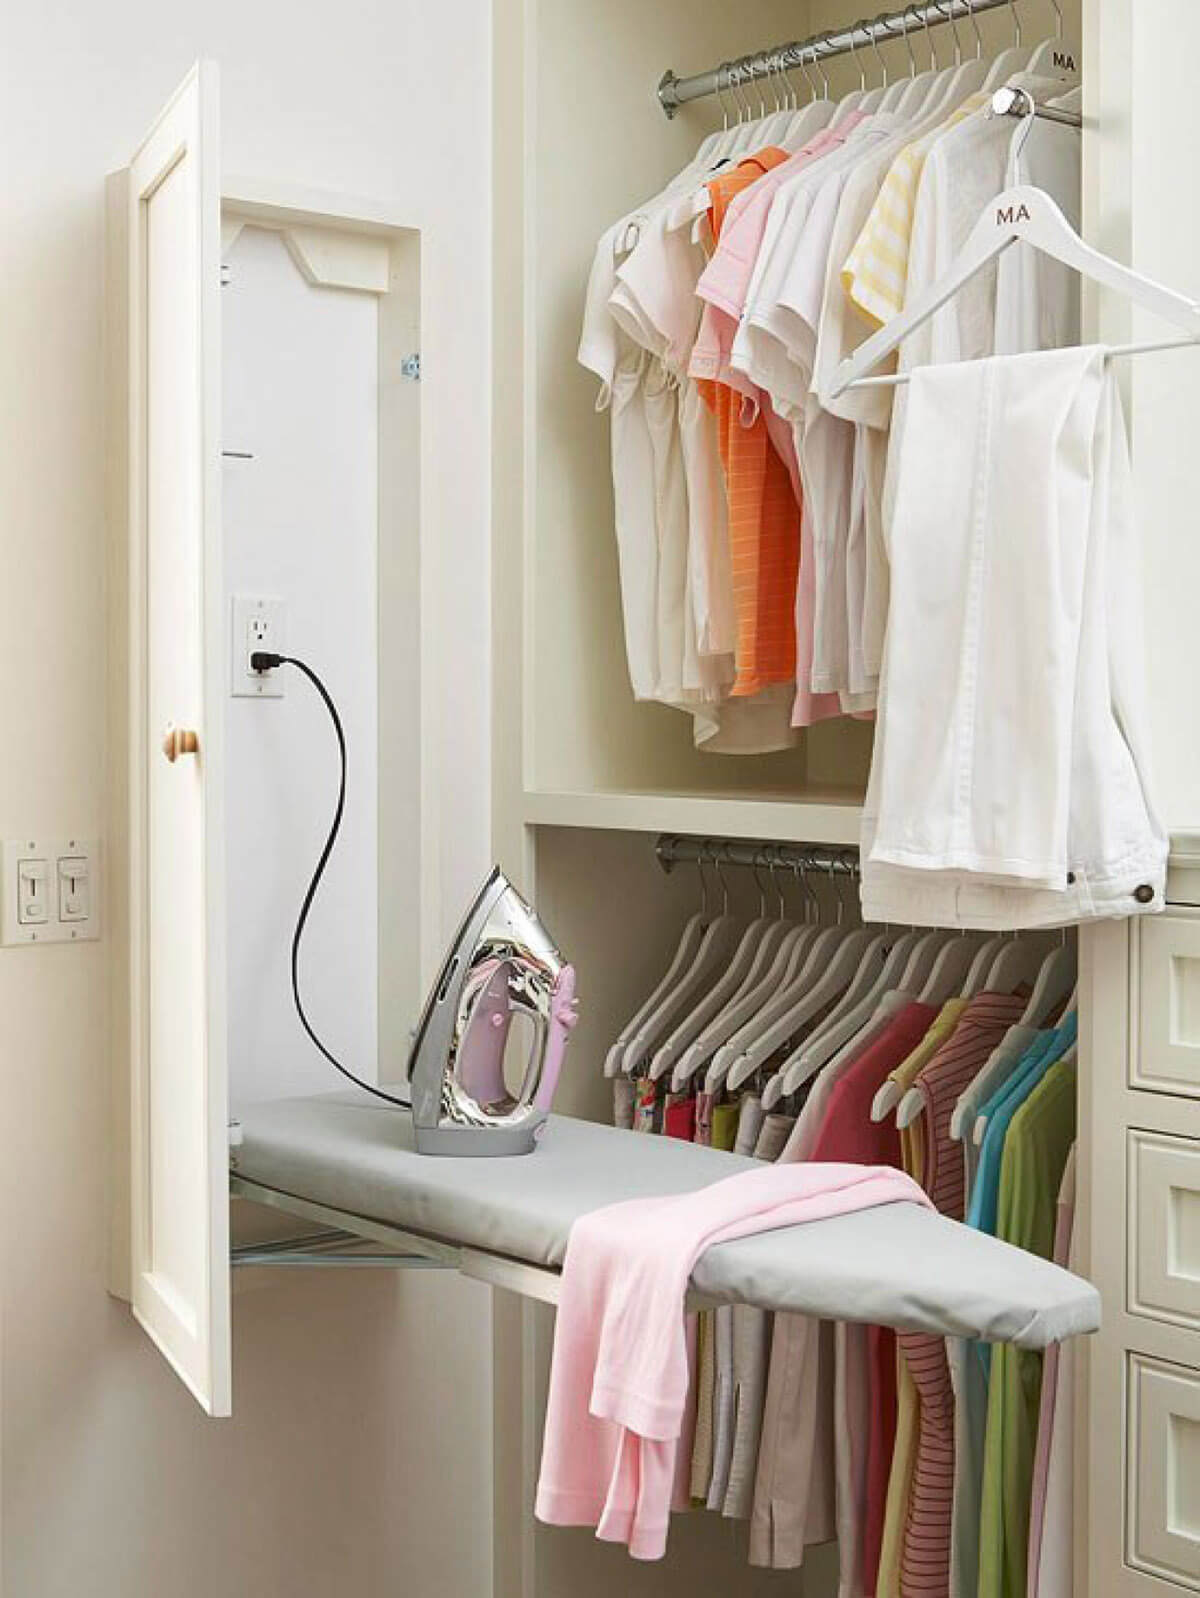 This Fold-up Ironing Board is a Closet Space-saving Essential